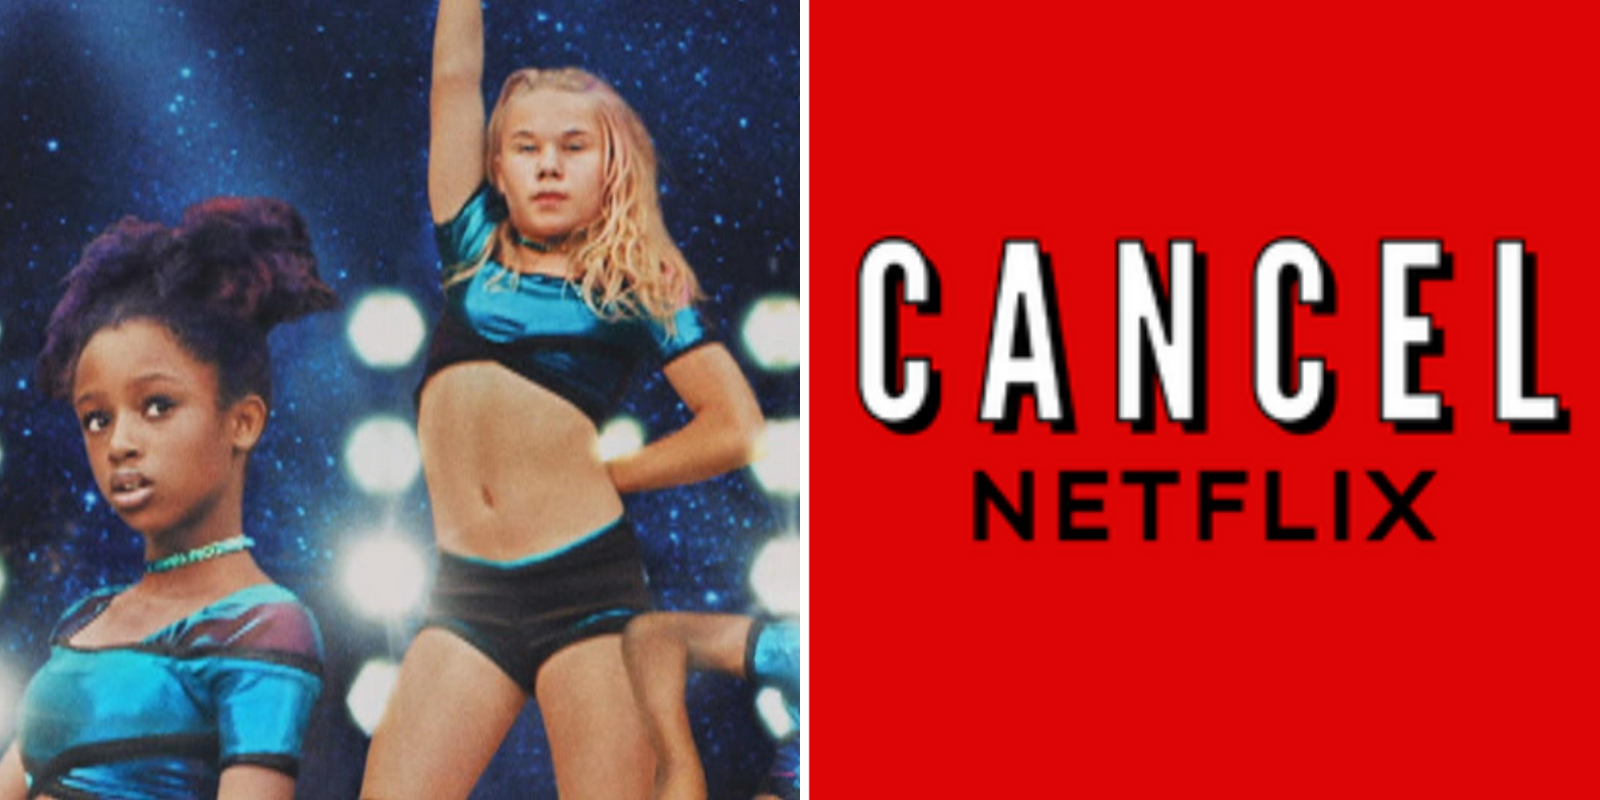 Netflix cancellations up EIGHTFOLD since pedophile movie 'Cuties' controversy